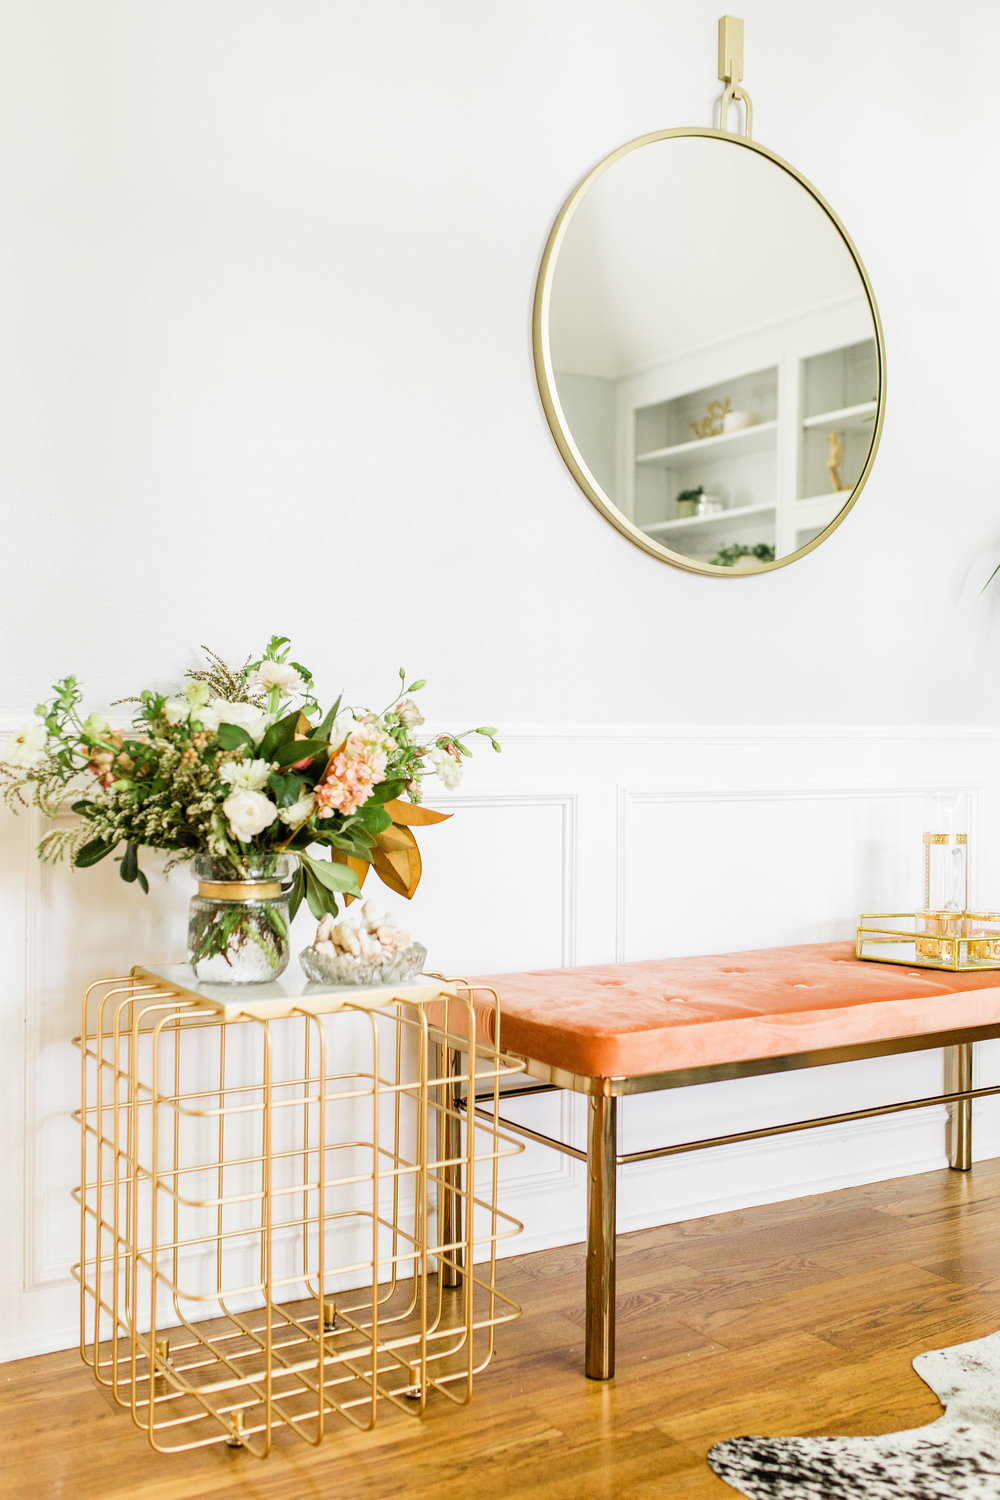 Home Decorating Tips for Beginners, Buy this Not That Gold Round mirror blush velvet bench